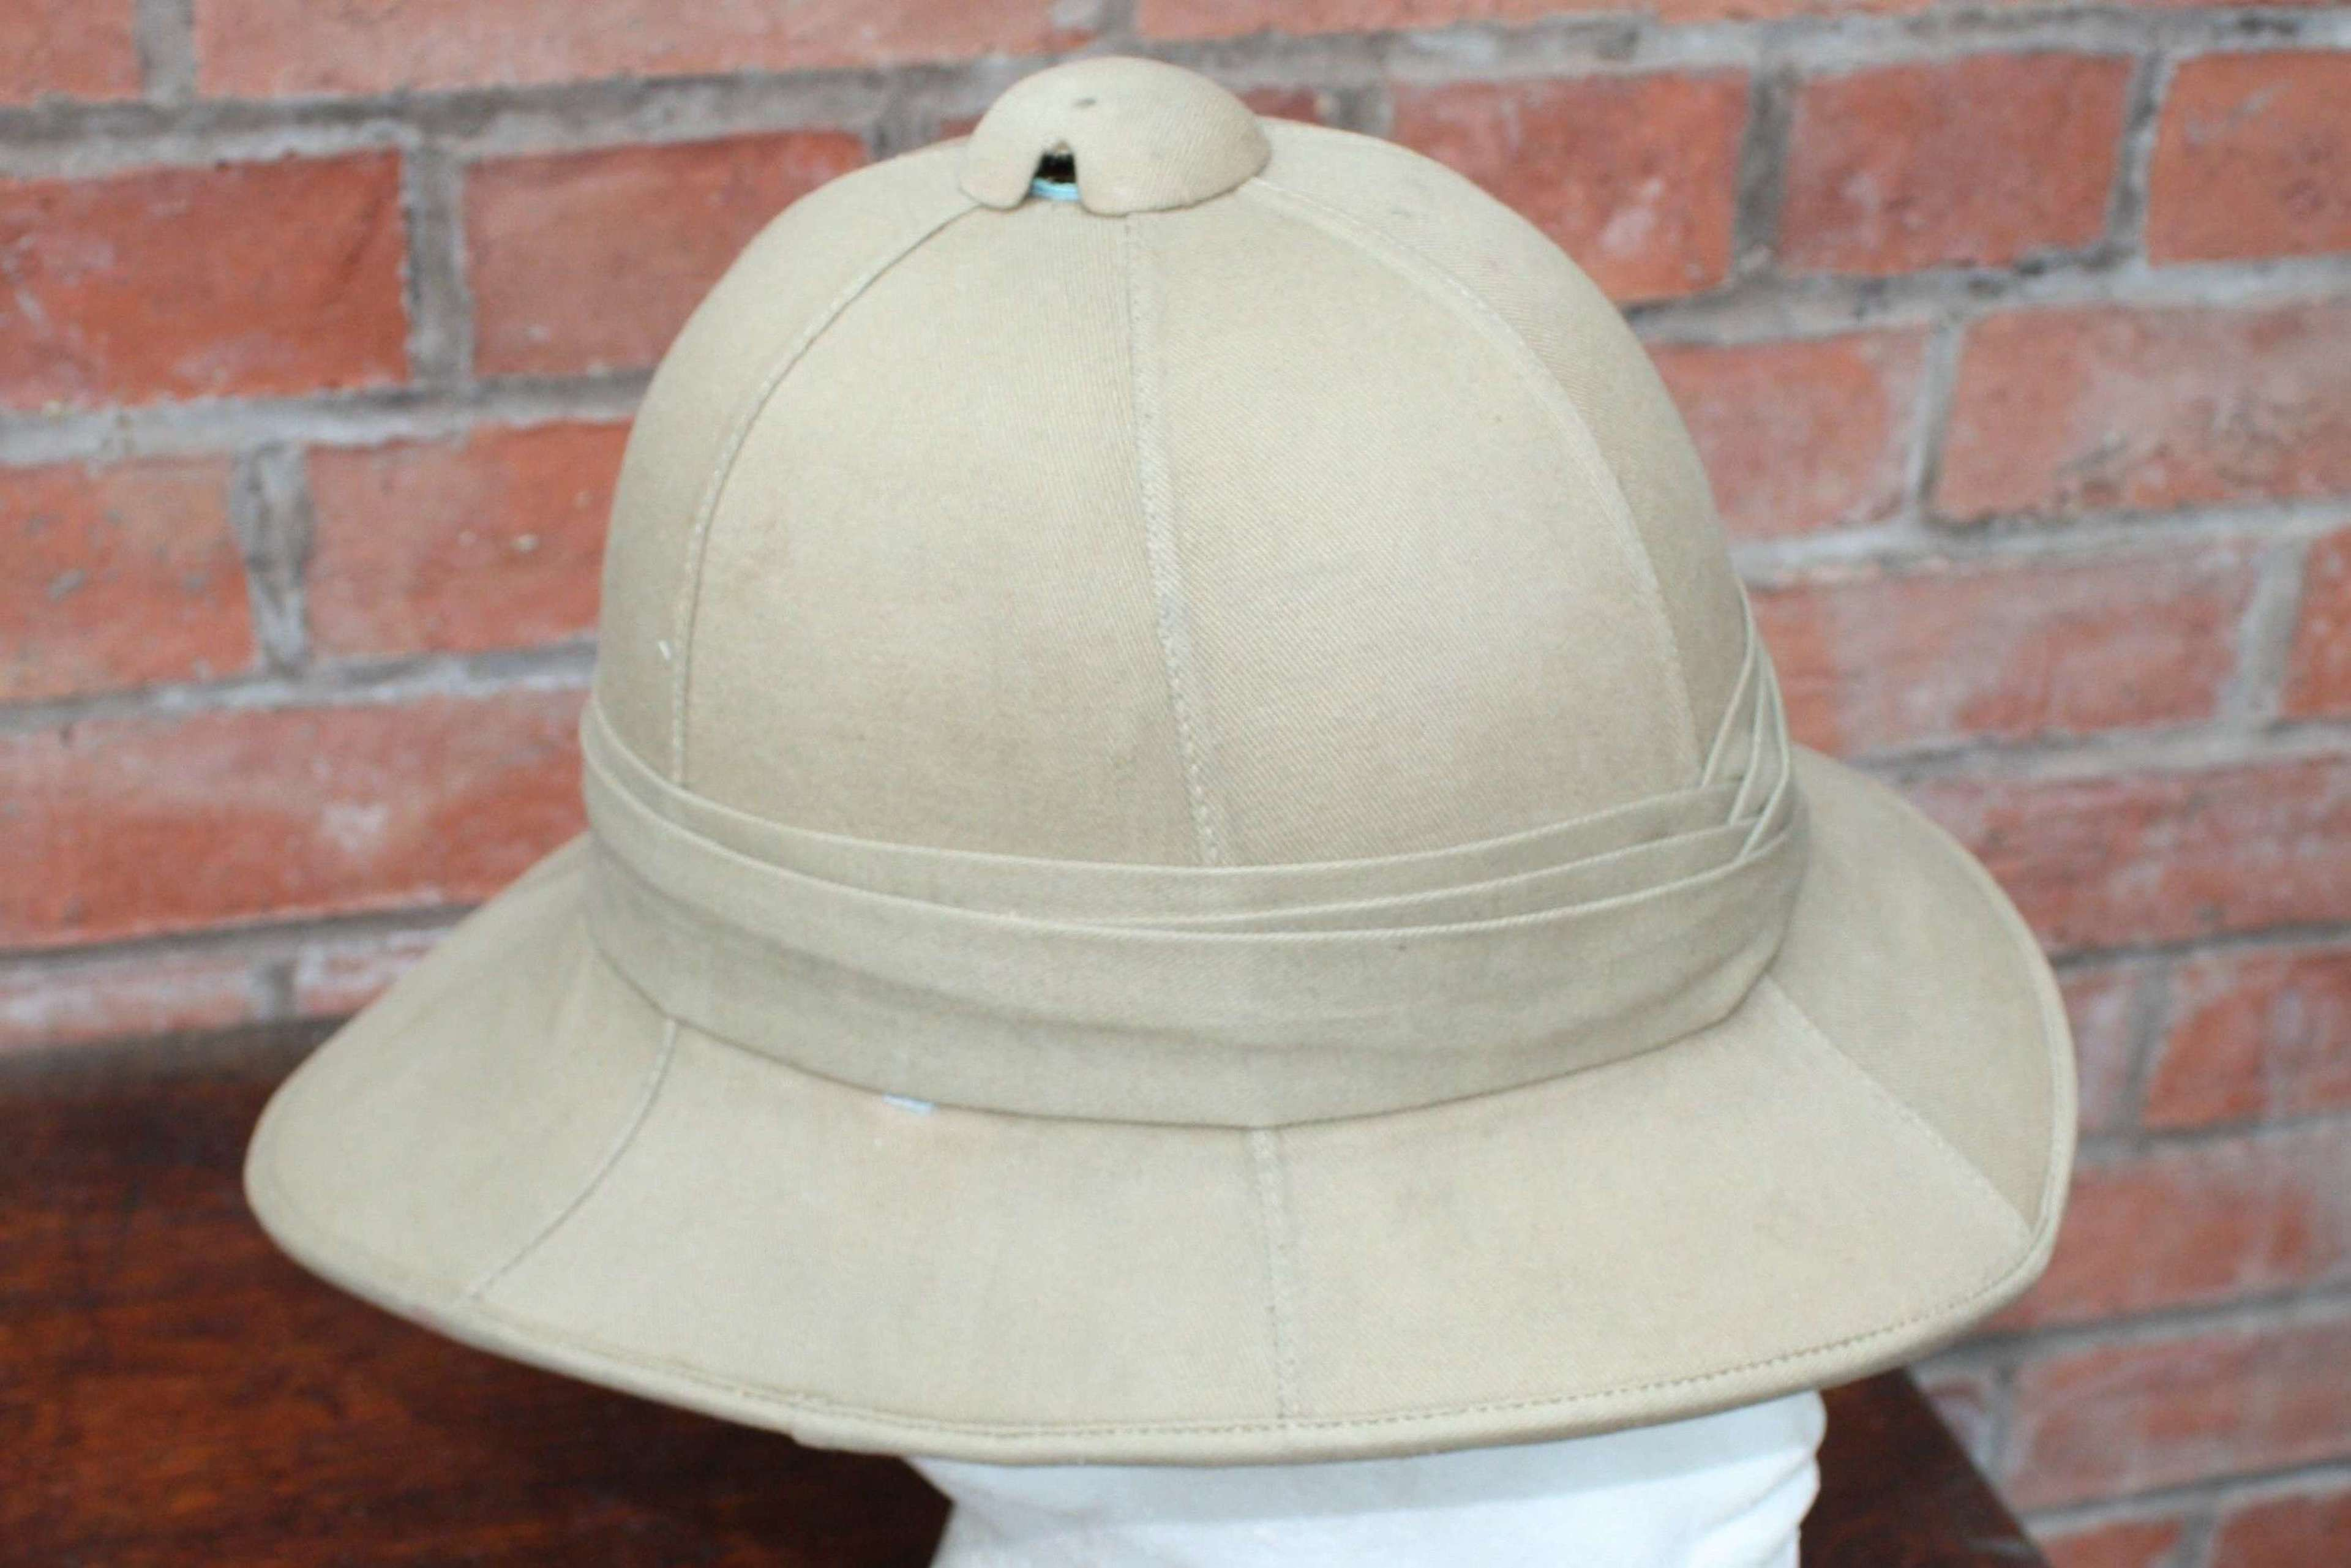 EARLY WW2 BRITISH ARMY OTHER RANKS PITH HELMET